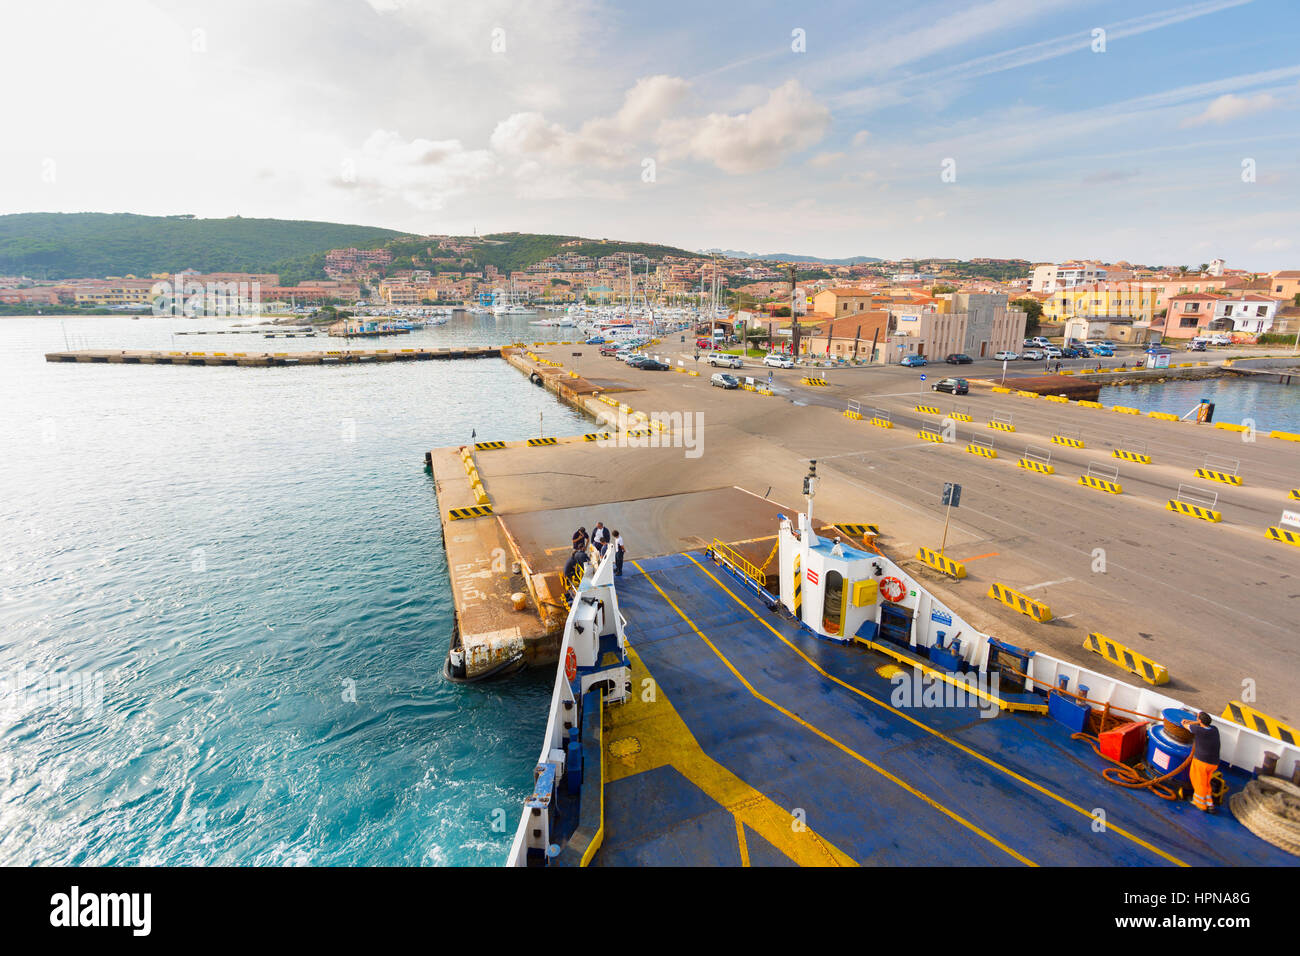 View The harbour of Palau from ferry boat, northern Sardinia,Italy Stock Photo